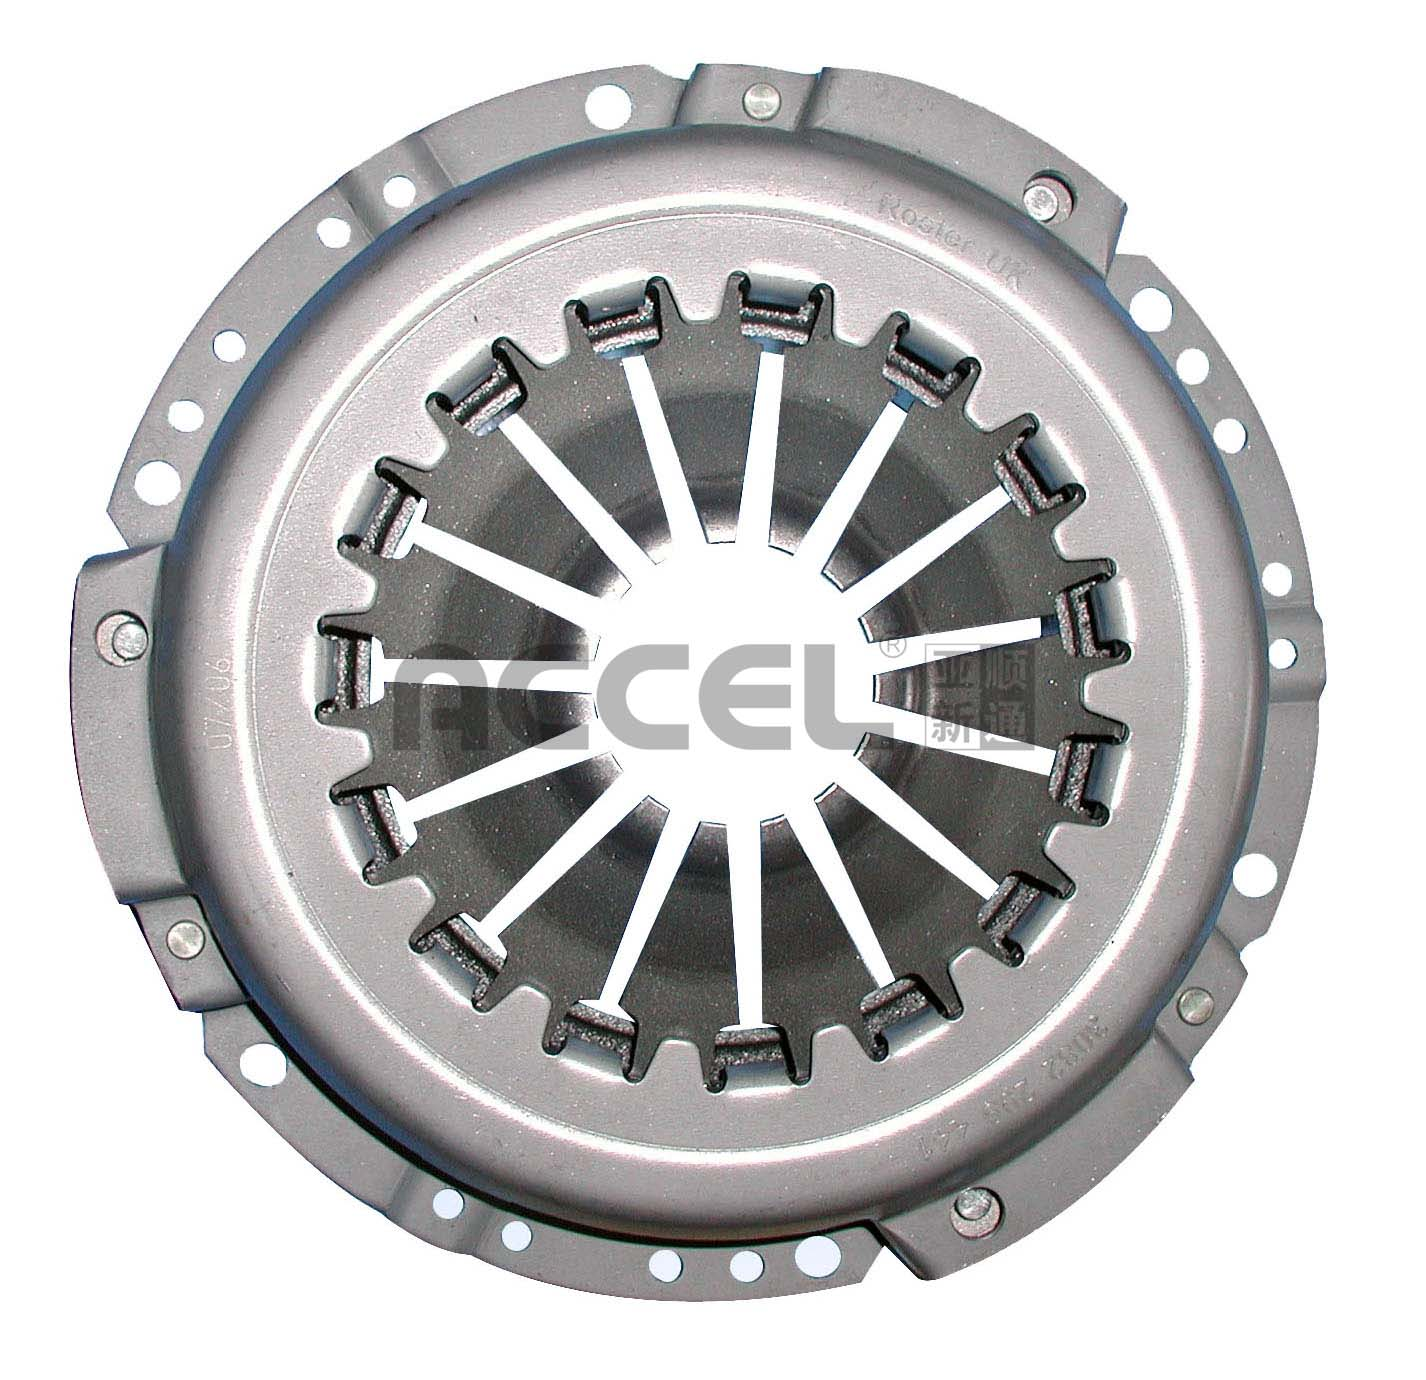 Clutch Cover/OE:3082 299 441/215*145*251/STC-070/OTHERS/LY301/85.H.510